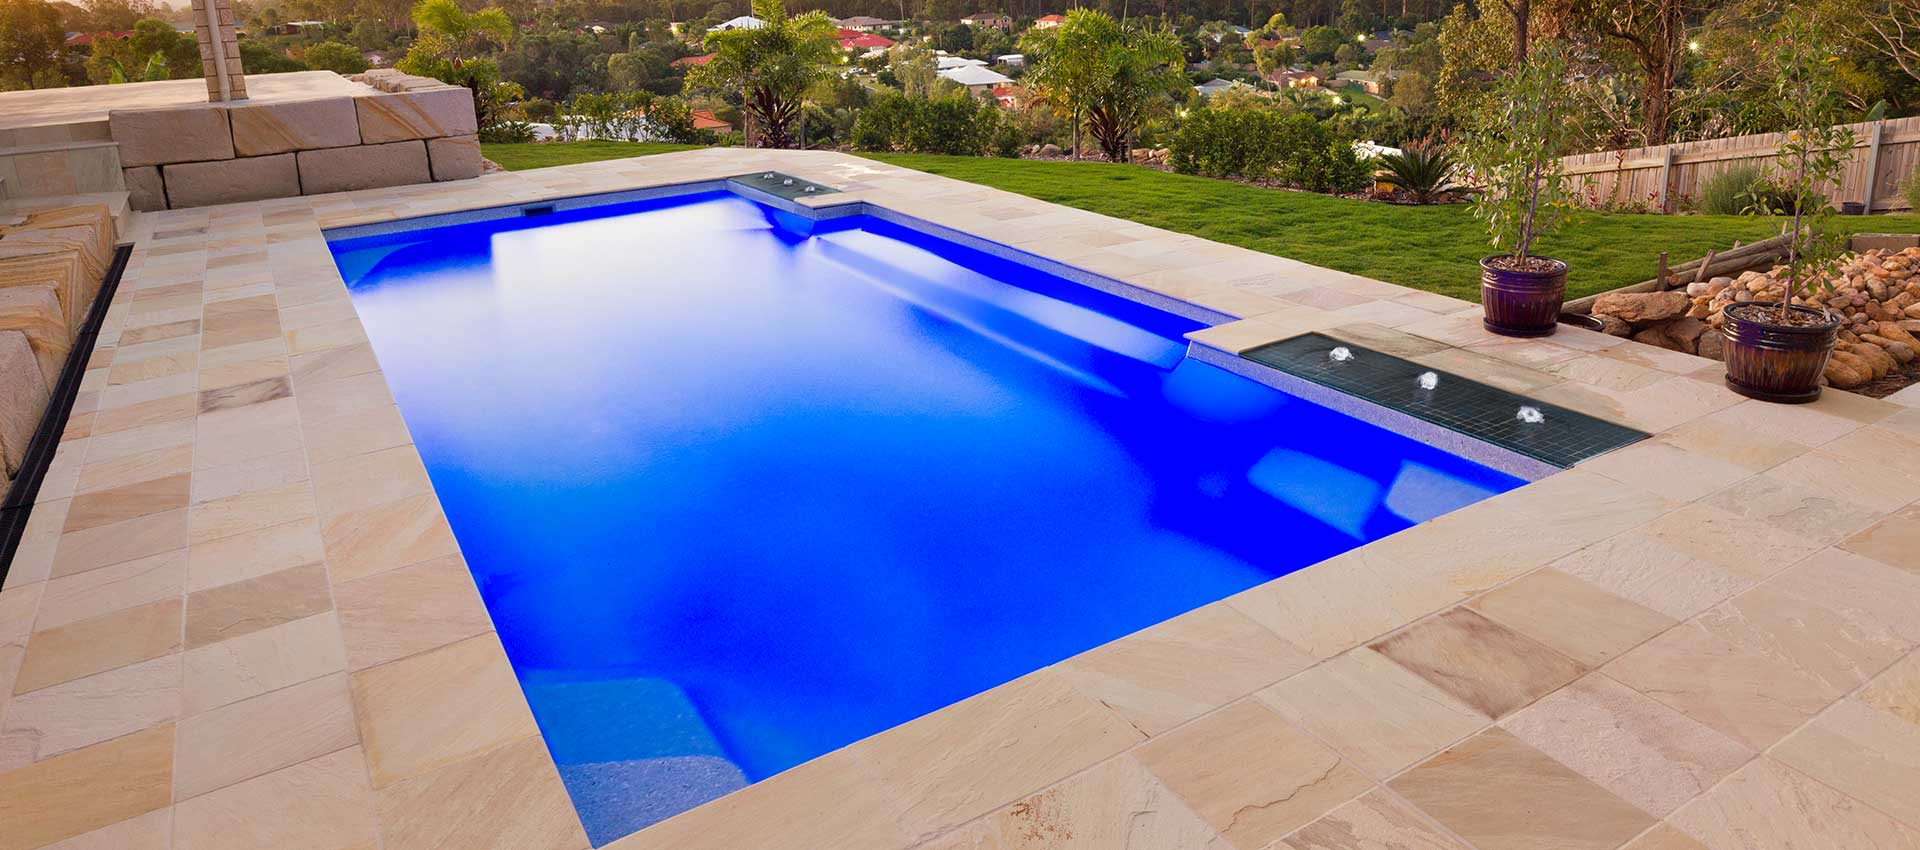 Complete Fibreglass Pool Kits - Hayman Pool